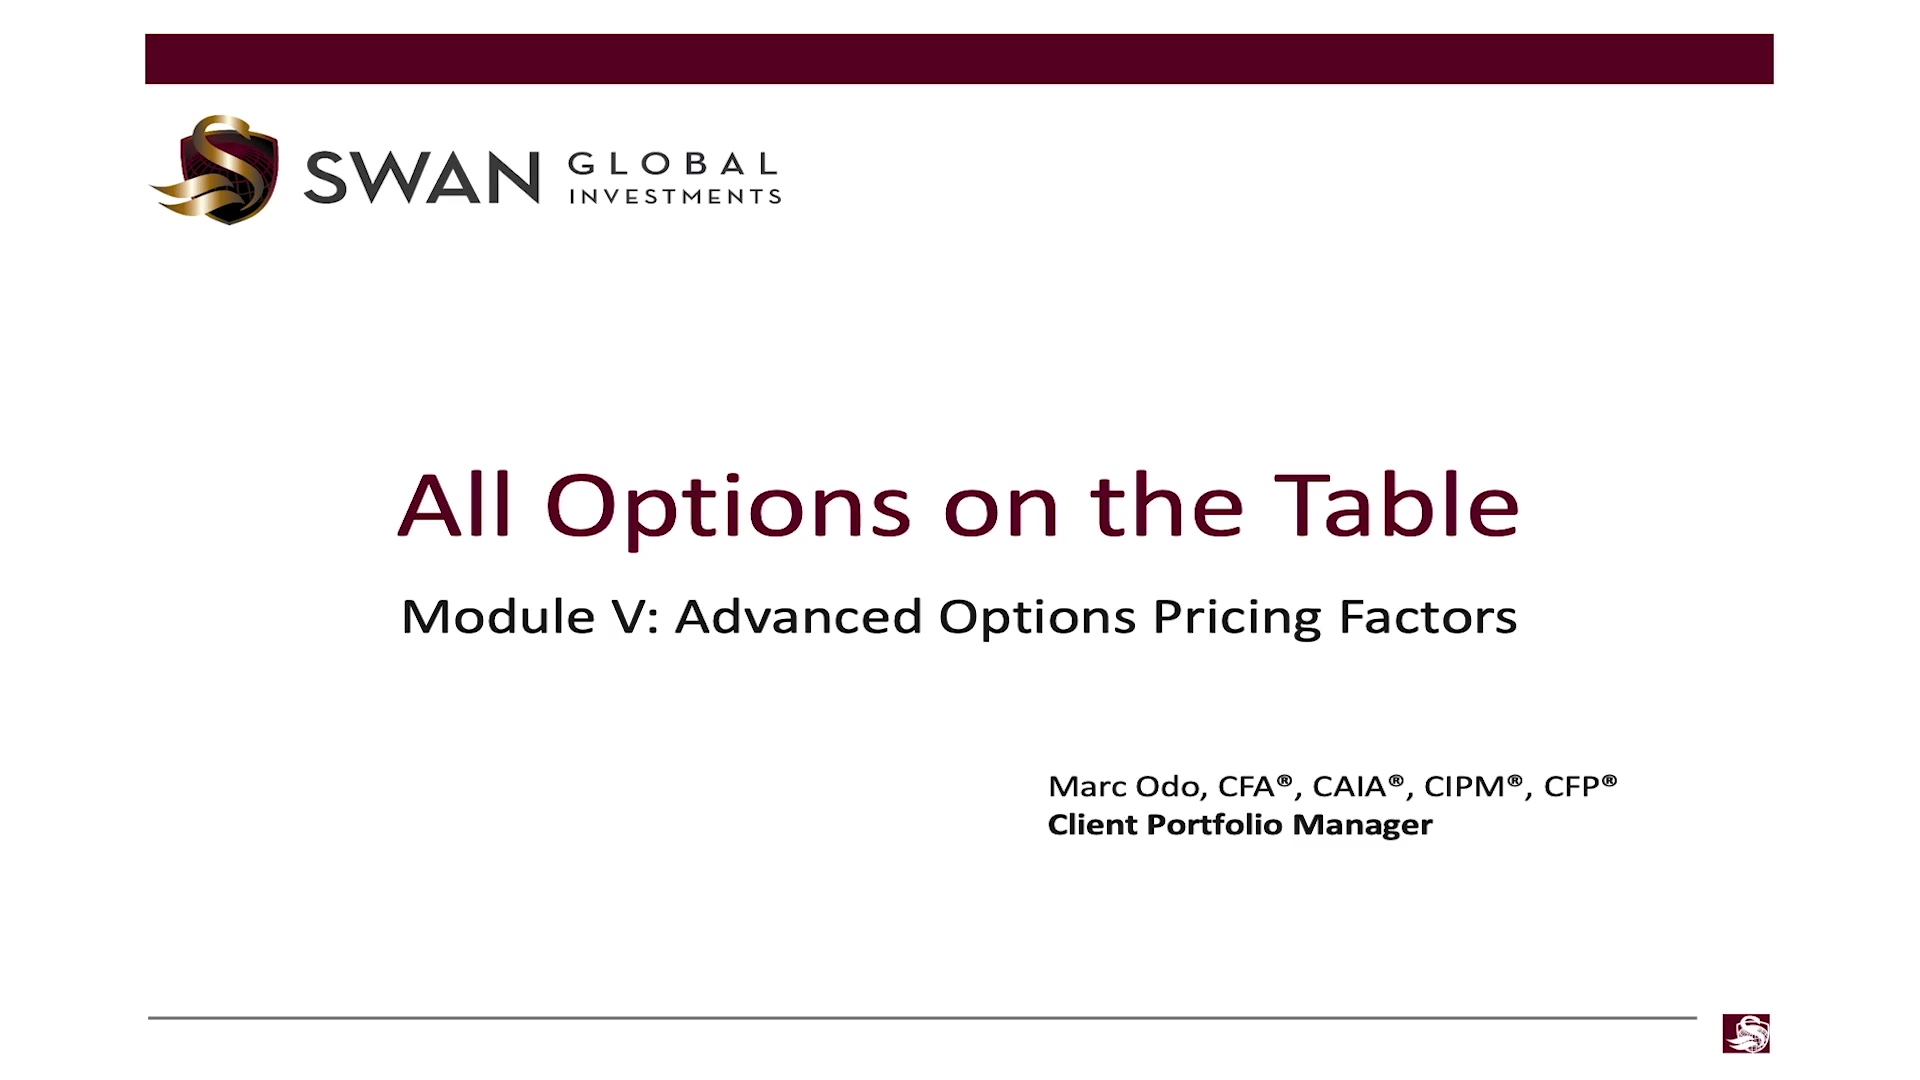 All Options on the Table - Module 05 - Advanced Options Pricing Factors _ Swan Global Investments